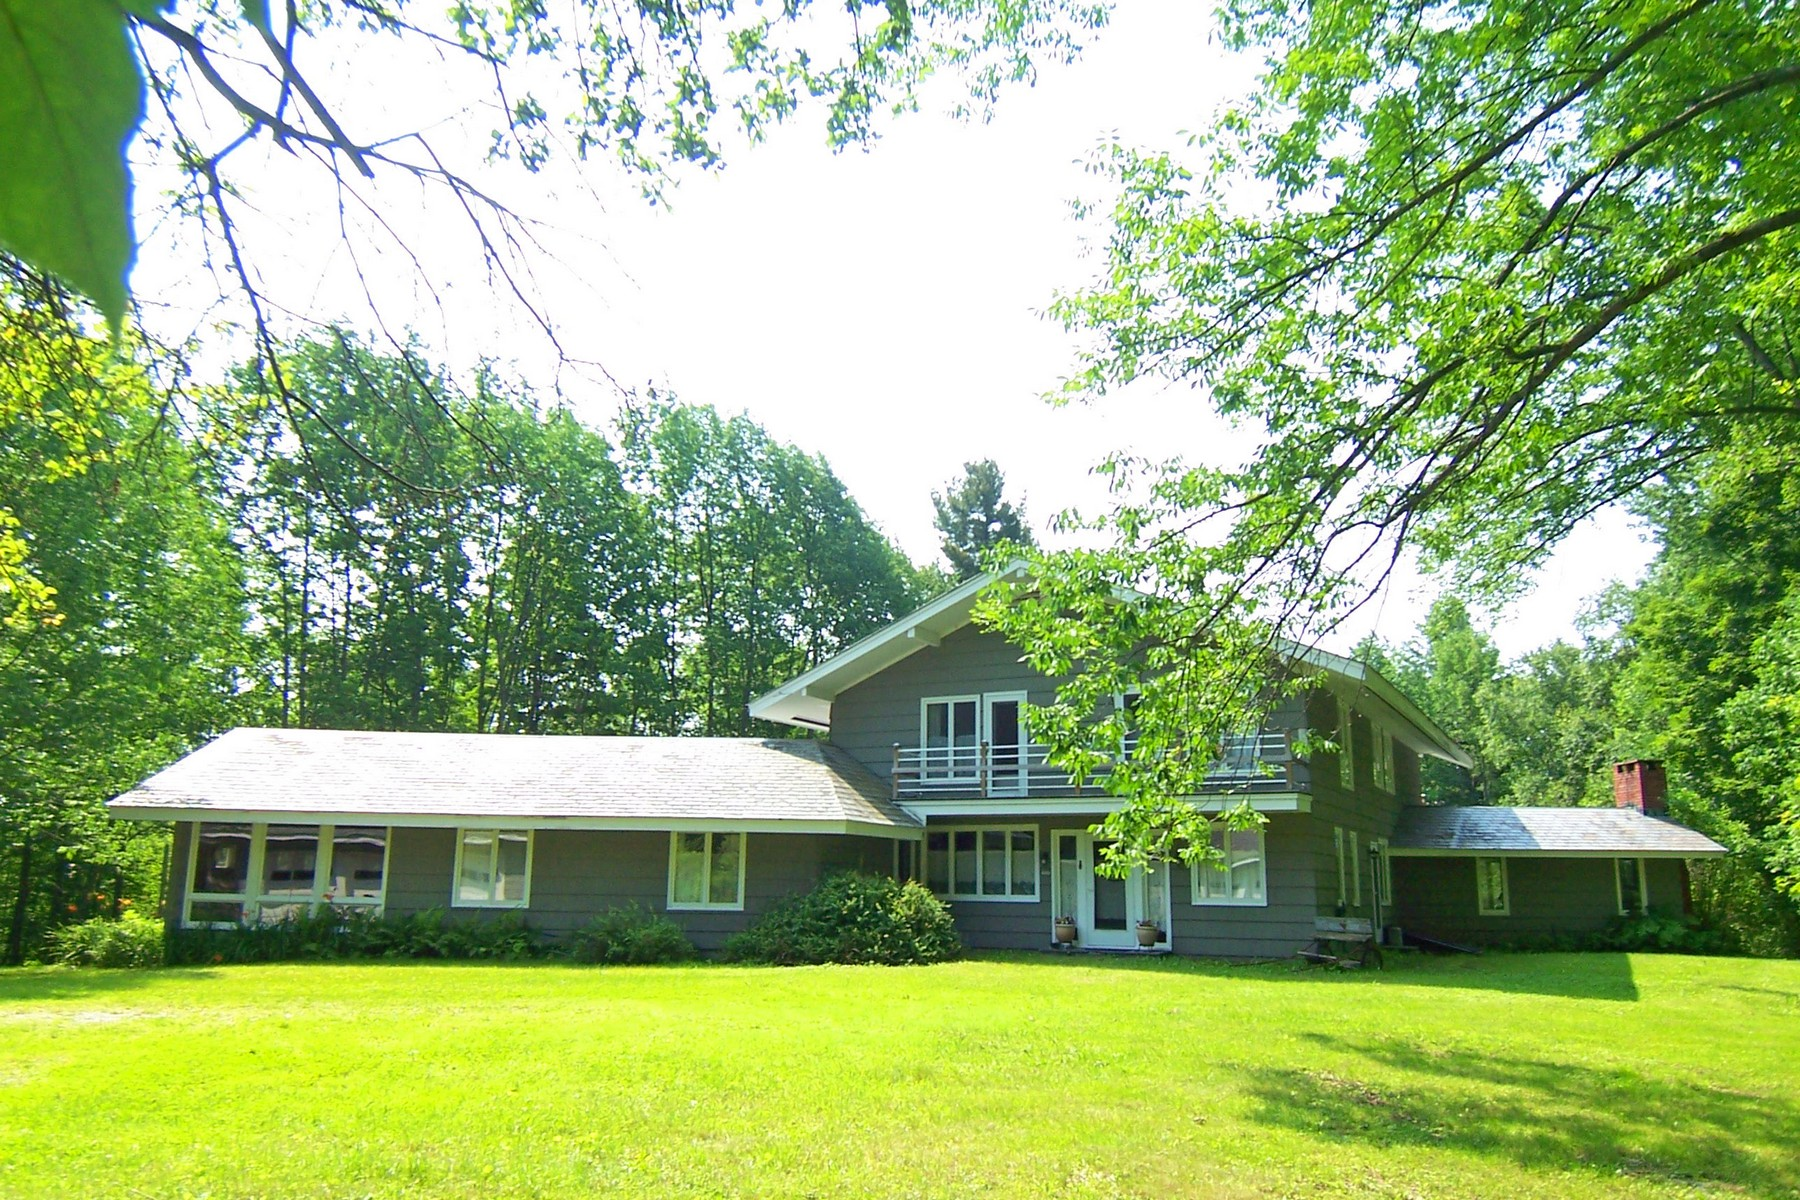 Single Family Home for Sale at 536 Main, Peru Peru, Vermont, 05152 United States